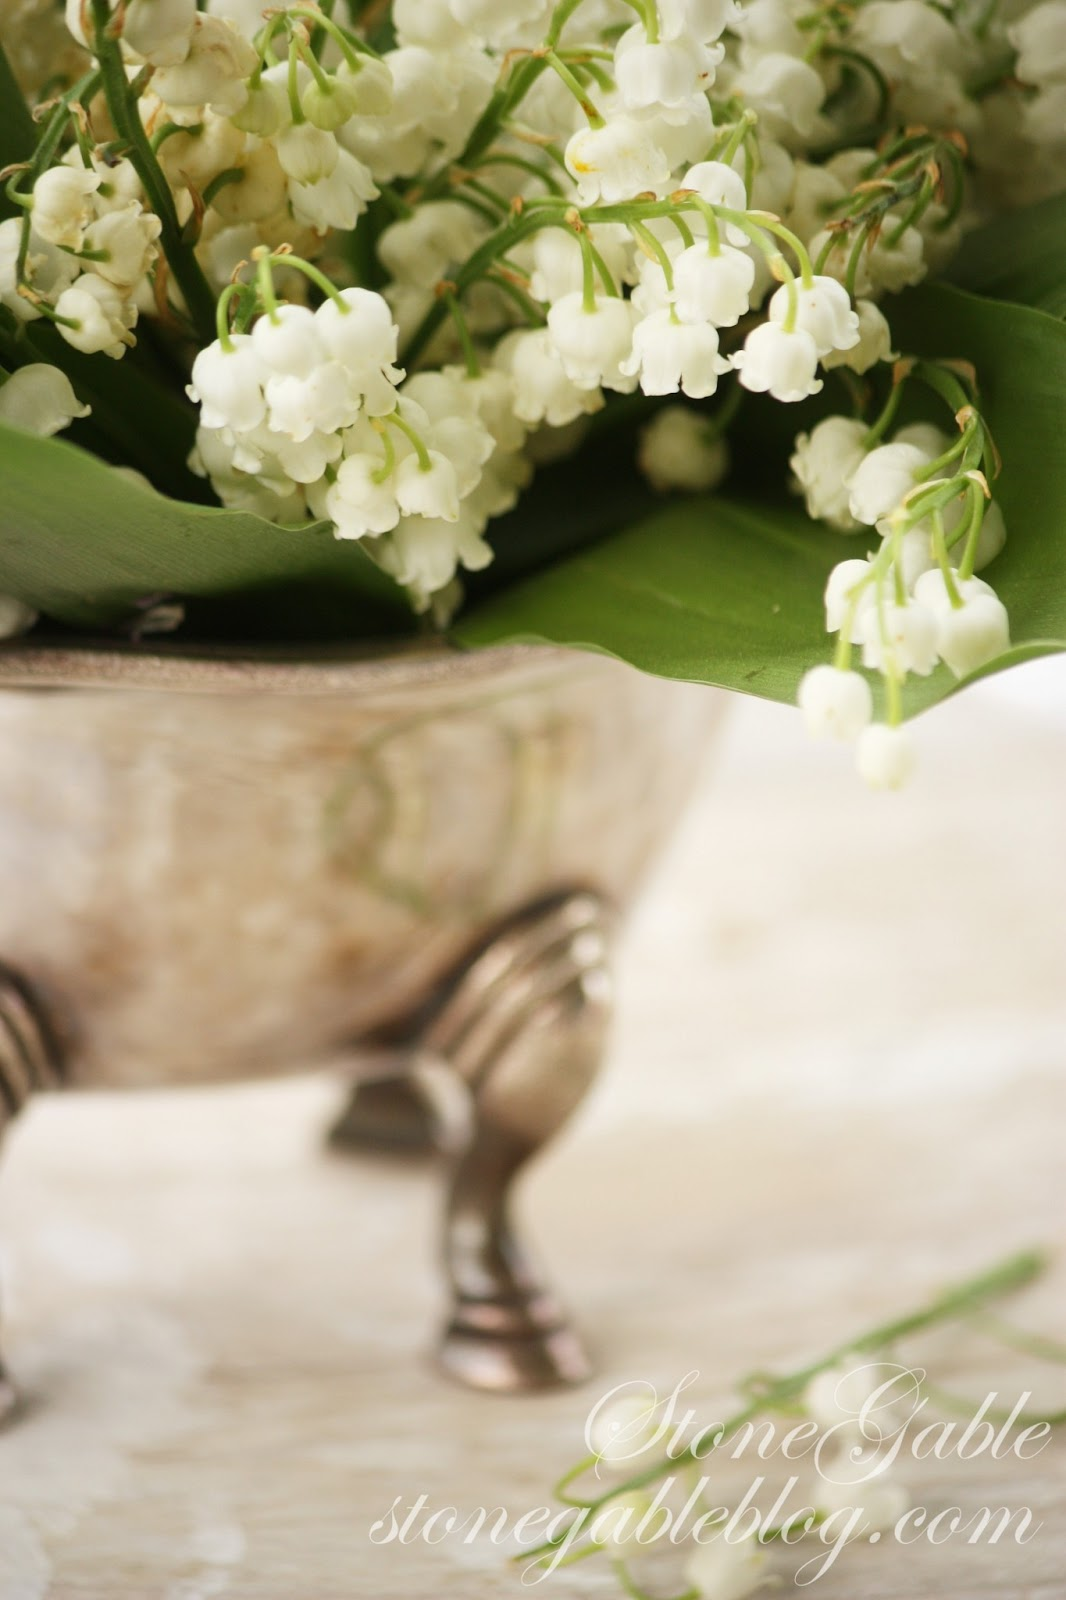 Flowers online 2018 lily of the valley flower arrangement flowers online 2018 lily of the valley flower arrangement flowers online izmirmasajfo